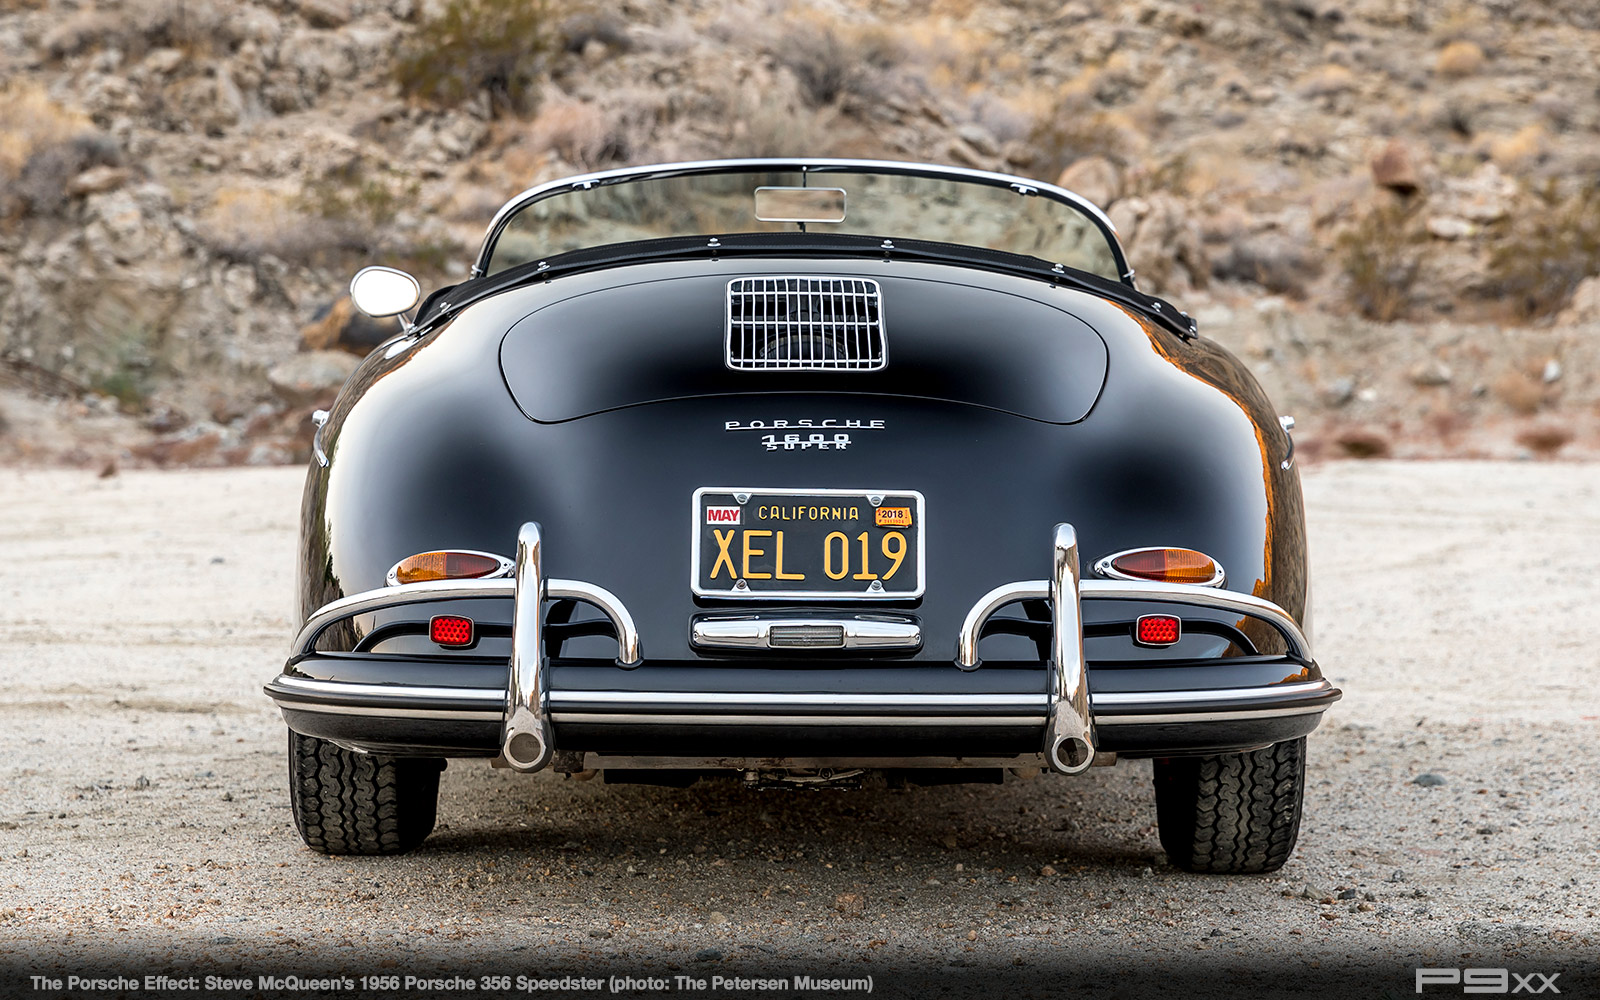 1956-Steve-McQueen-Chad-356-Speedster-Petersen-Automotive-Museum-The-Porsche-Effect-326